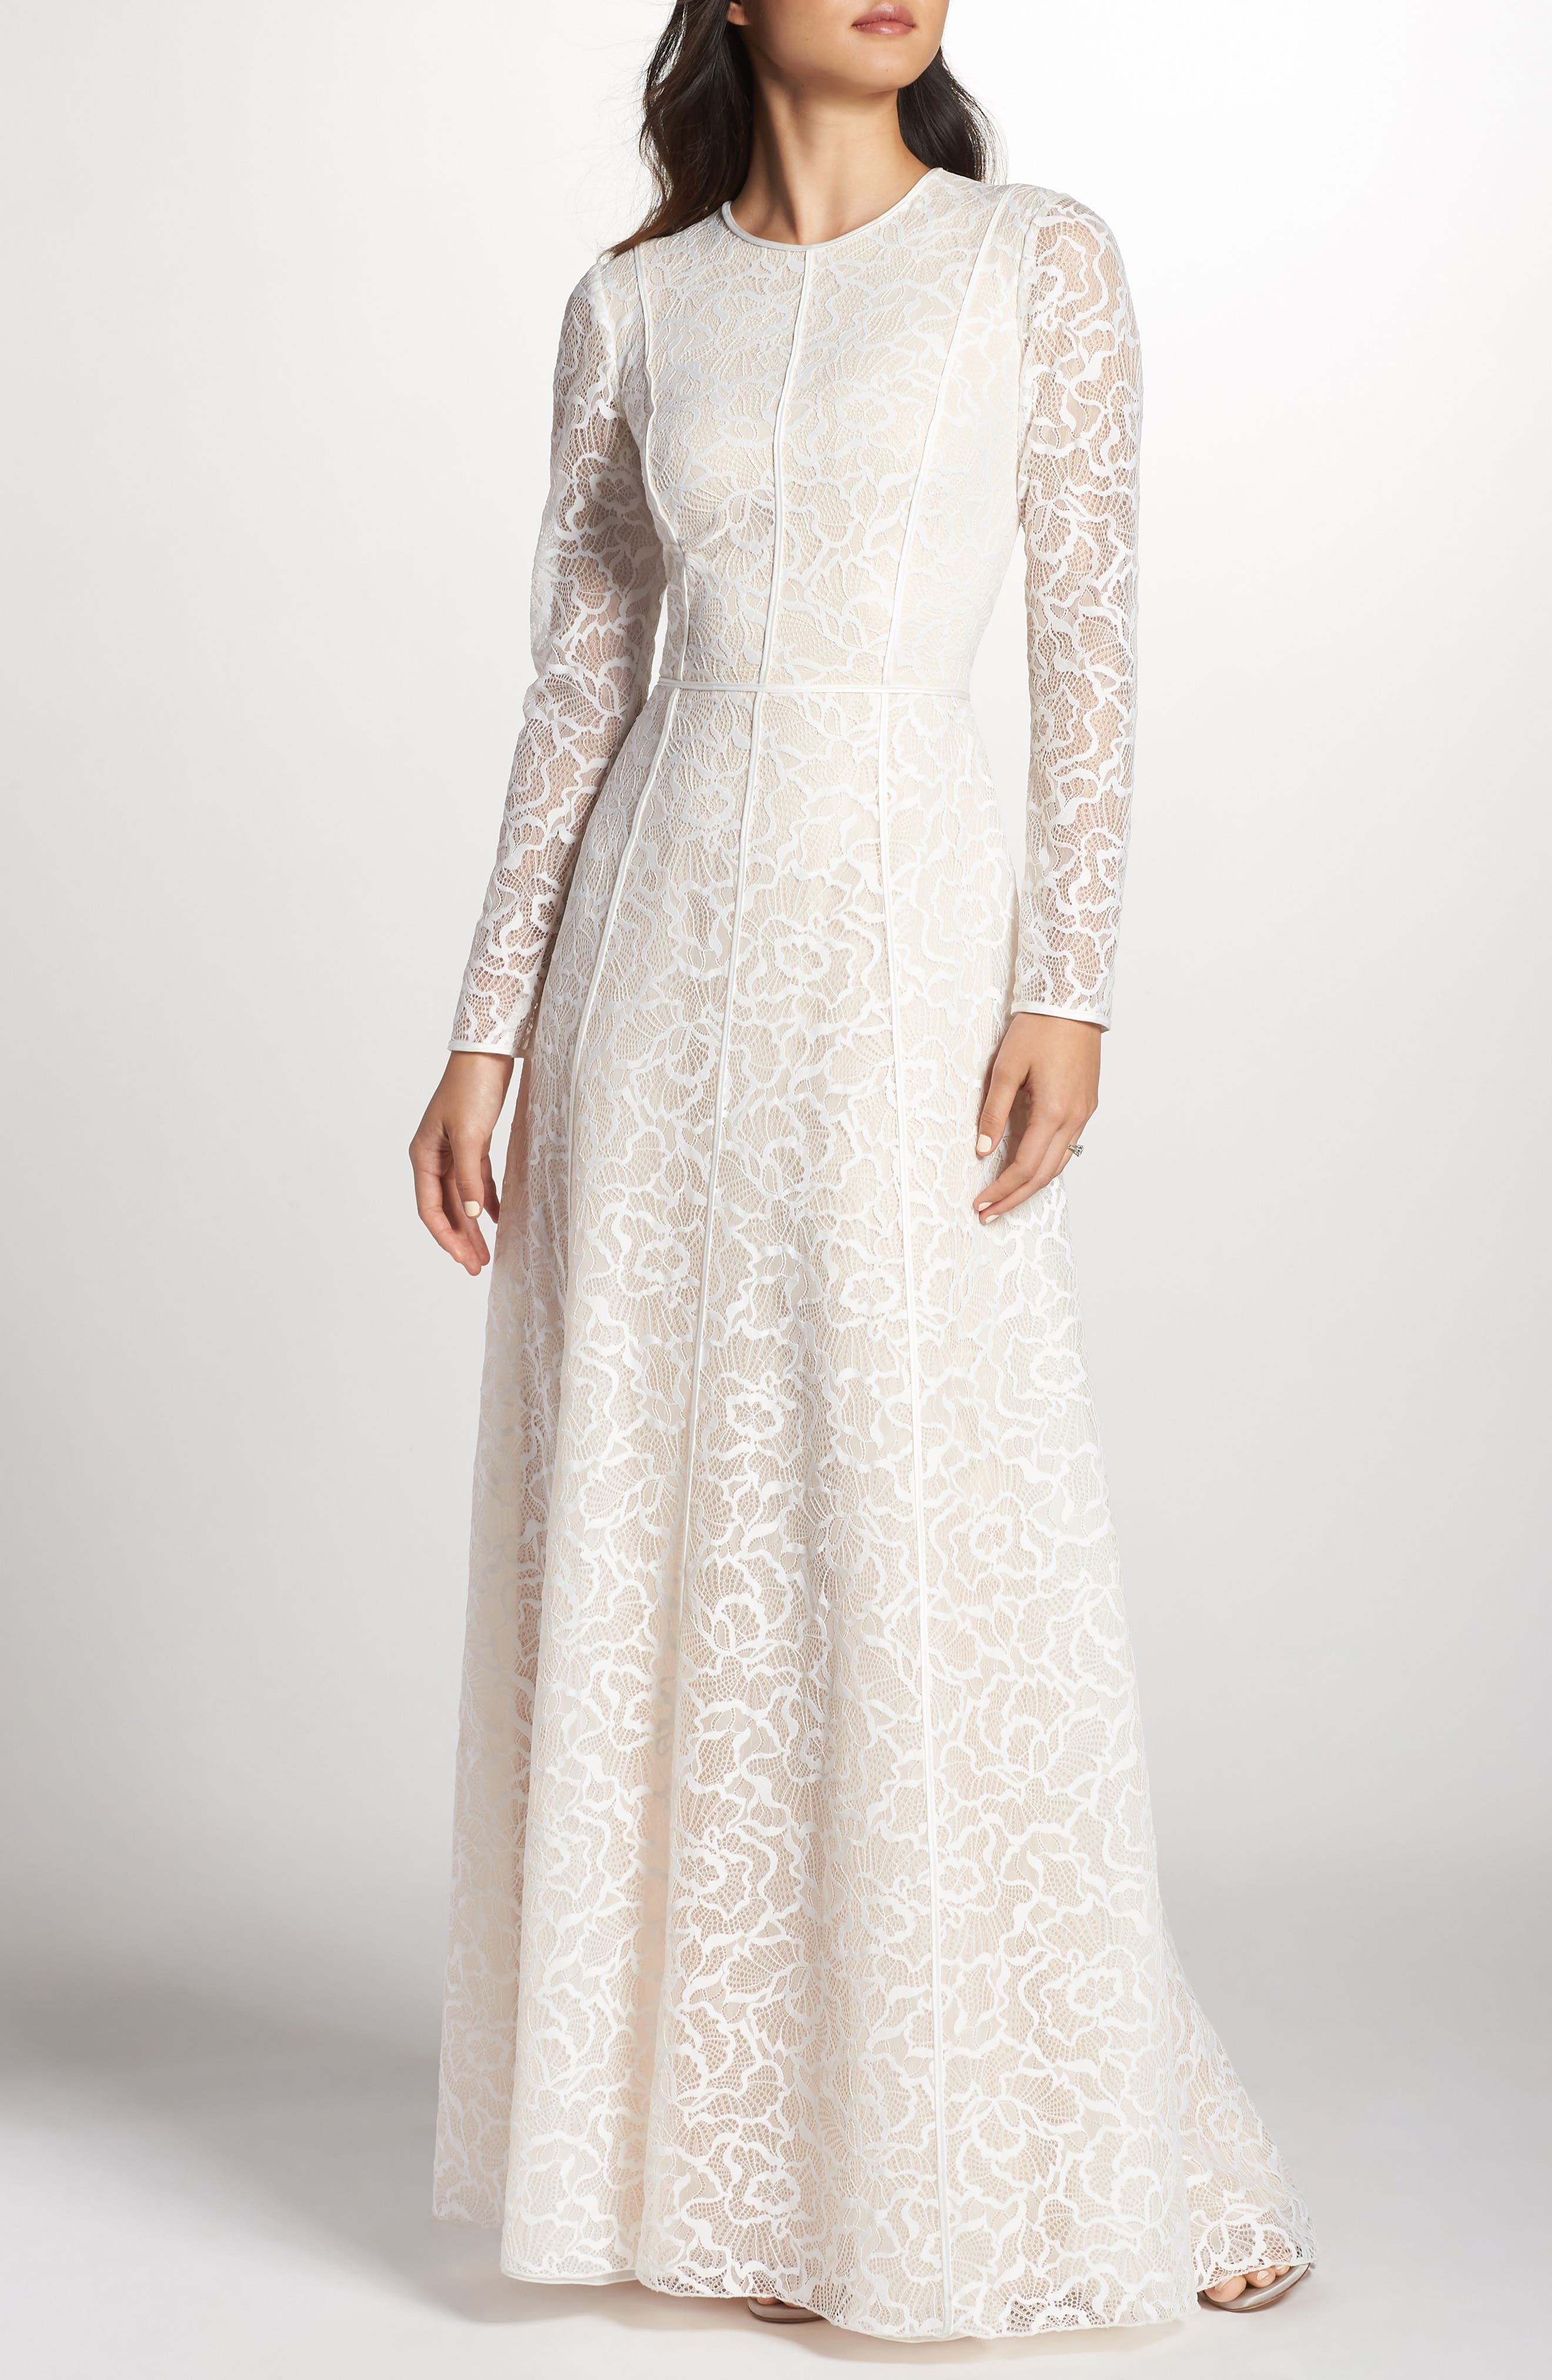 Sheer Sleeve Lace A-Line Gown,                             Main thumbnail 1, color,                             IVORY/ PETAL